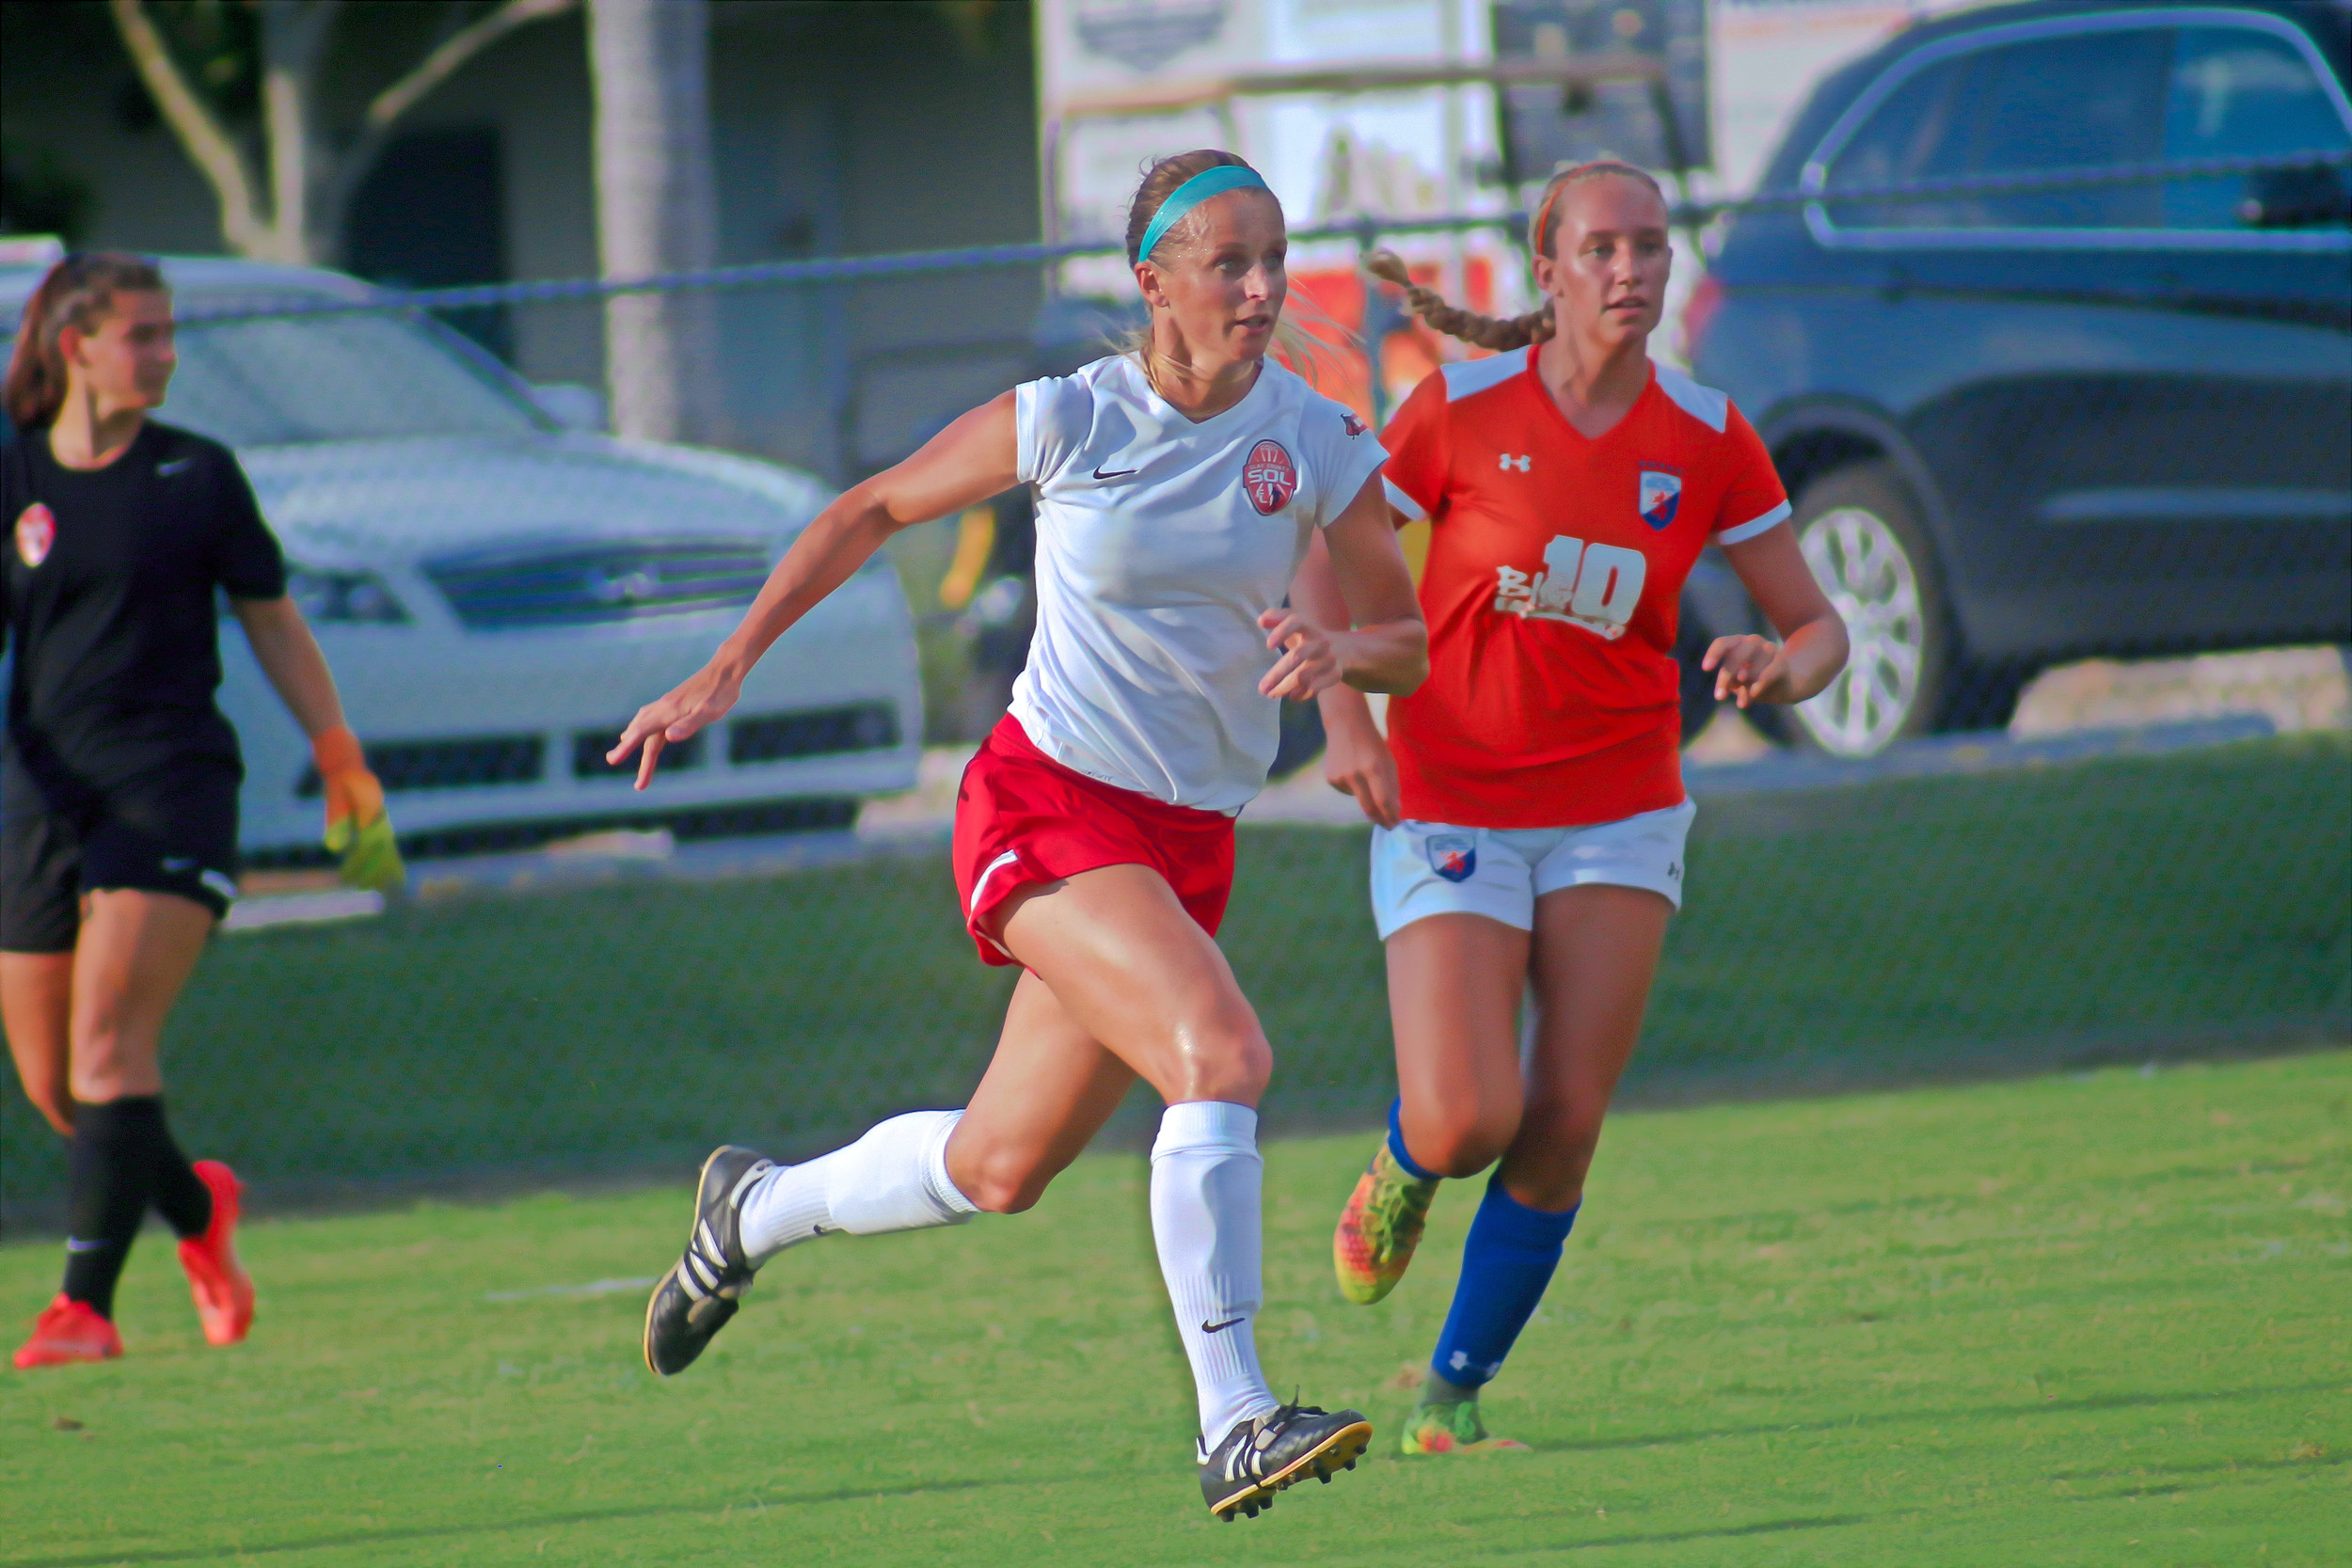 Florida SOL FC defender Brianna Oeser chases after loose ball in SOL's 3-0 win Friday night against Florida Gulf Coast Dutch Lions FC. SOL was set to play Sunday, but rain cancelled the match against Florida Krush. SOL ends season at 5-3.